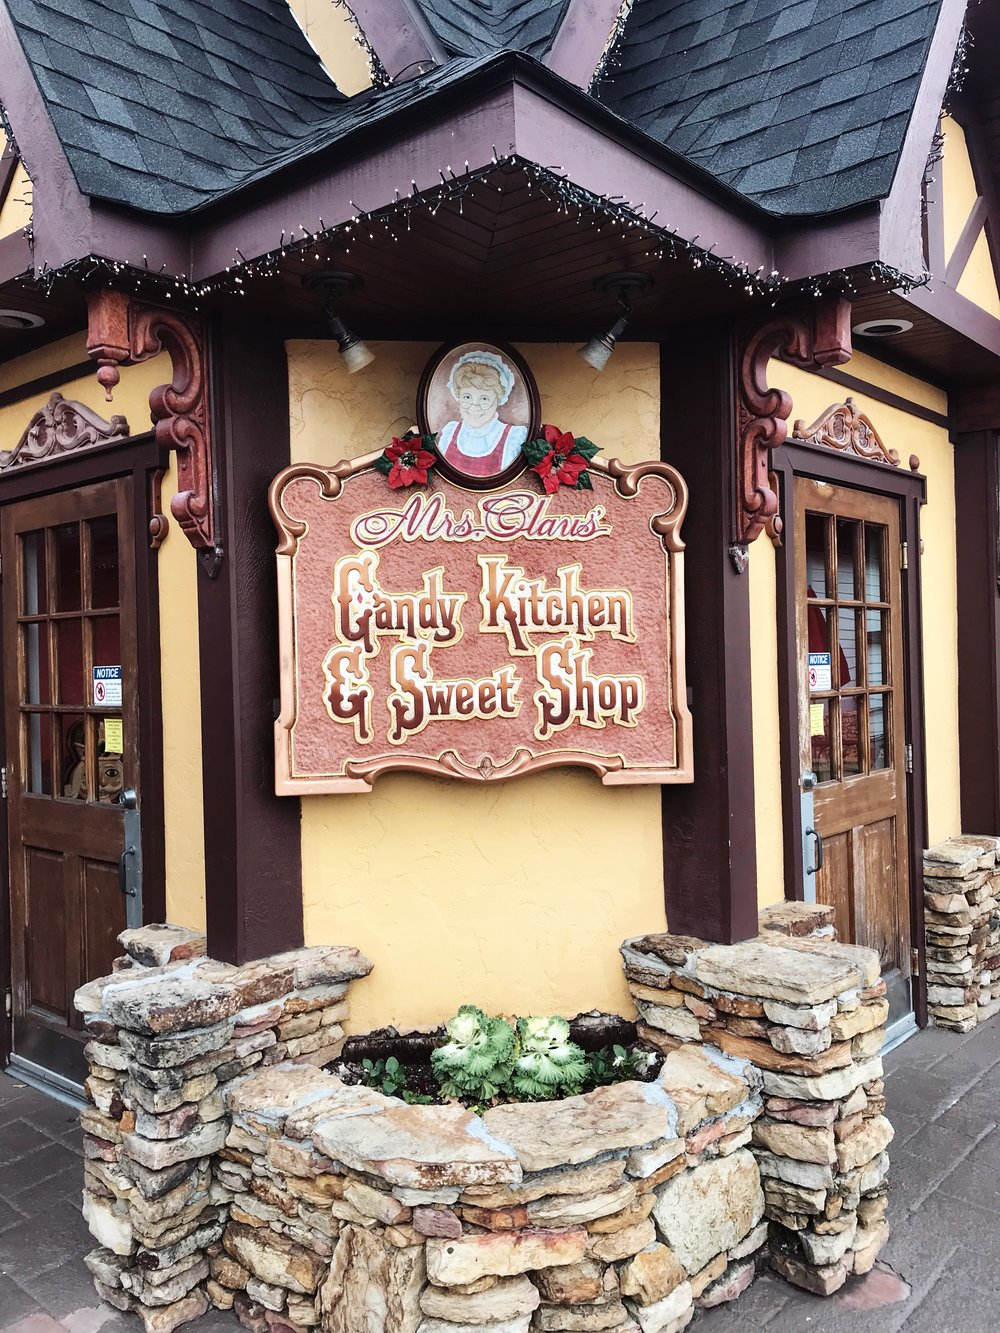 Fudge Shop at The Christmas Place in Pigeon Forge, Tennessee | Mallorie Owens